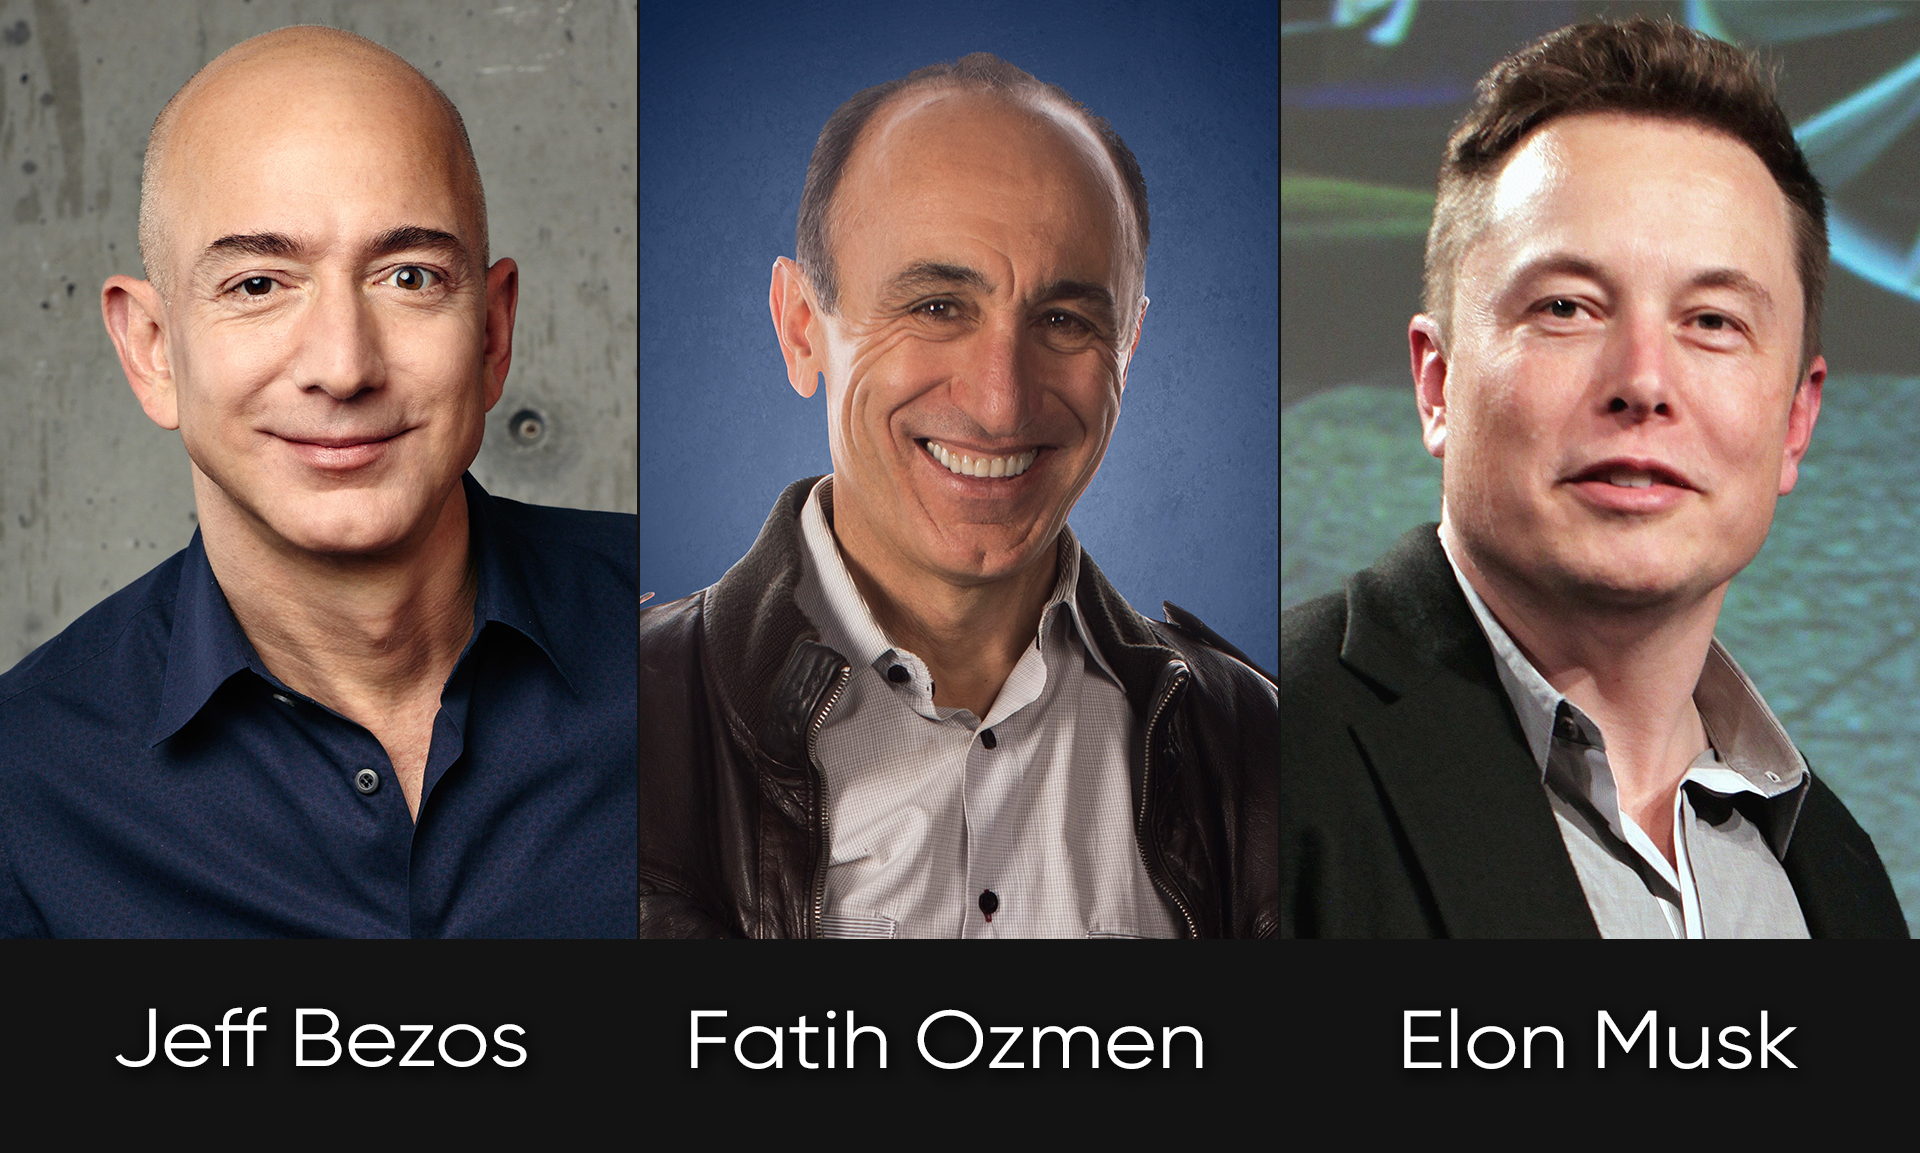 Sierra Nevada Corporation's Fatih Ozmen and New Space entrepreneurs Jeff Bezos, Elon Musk